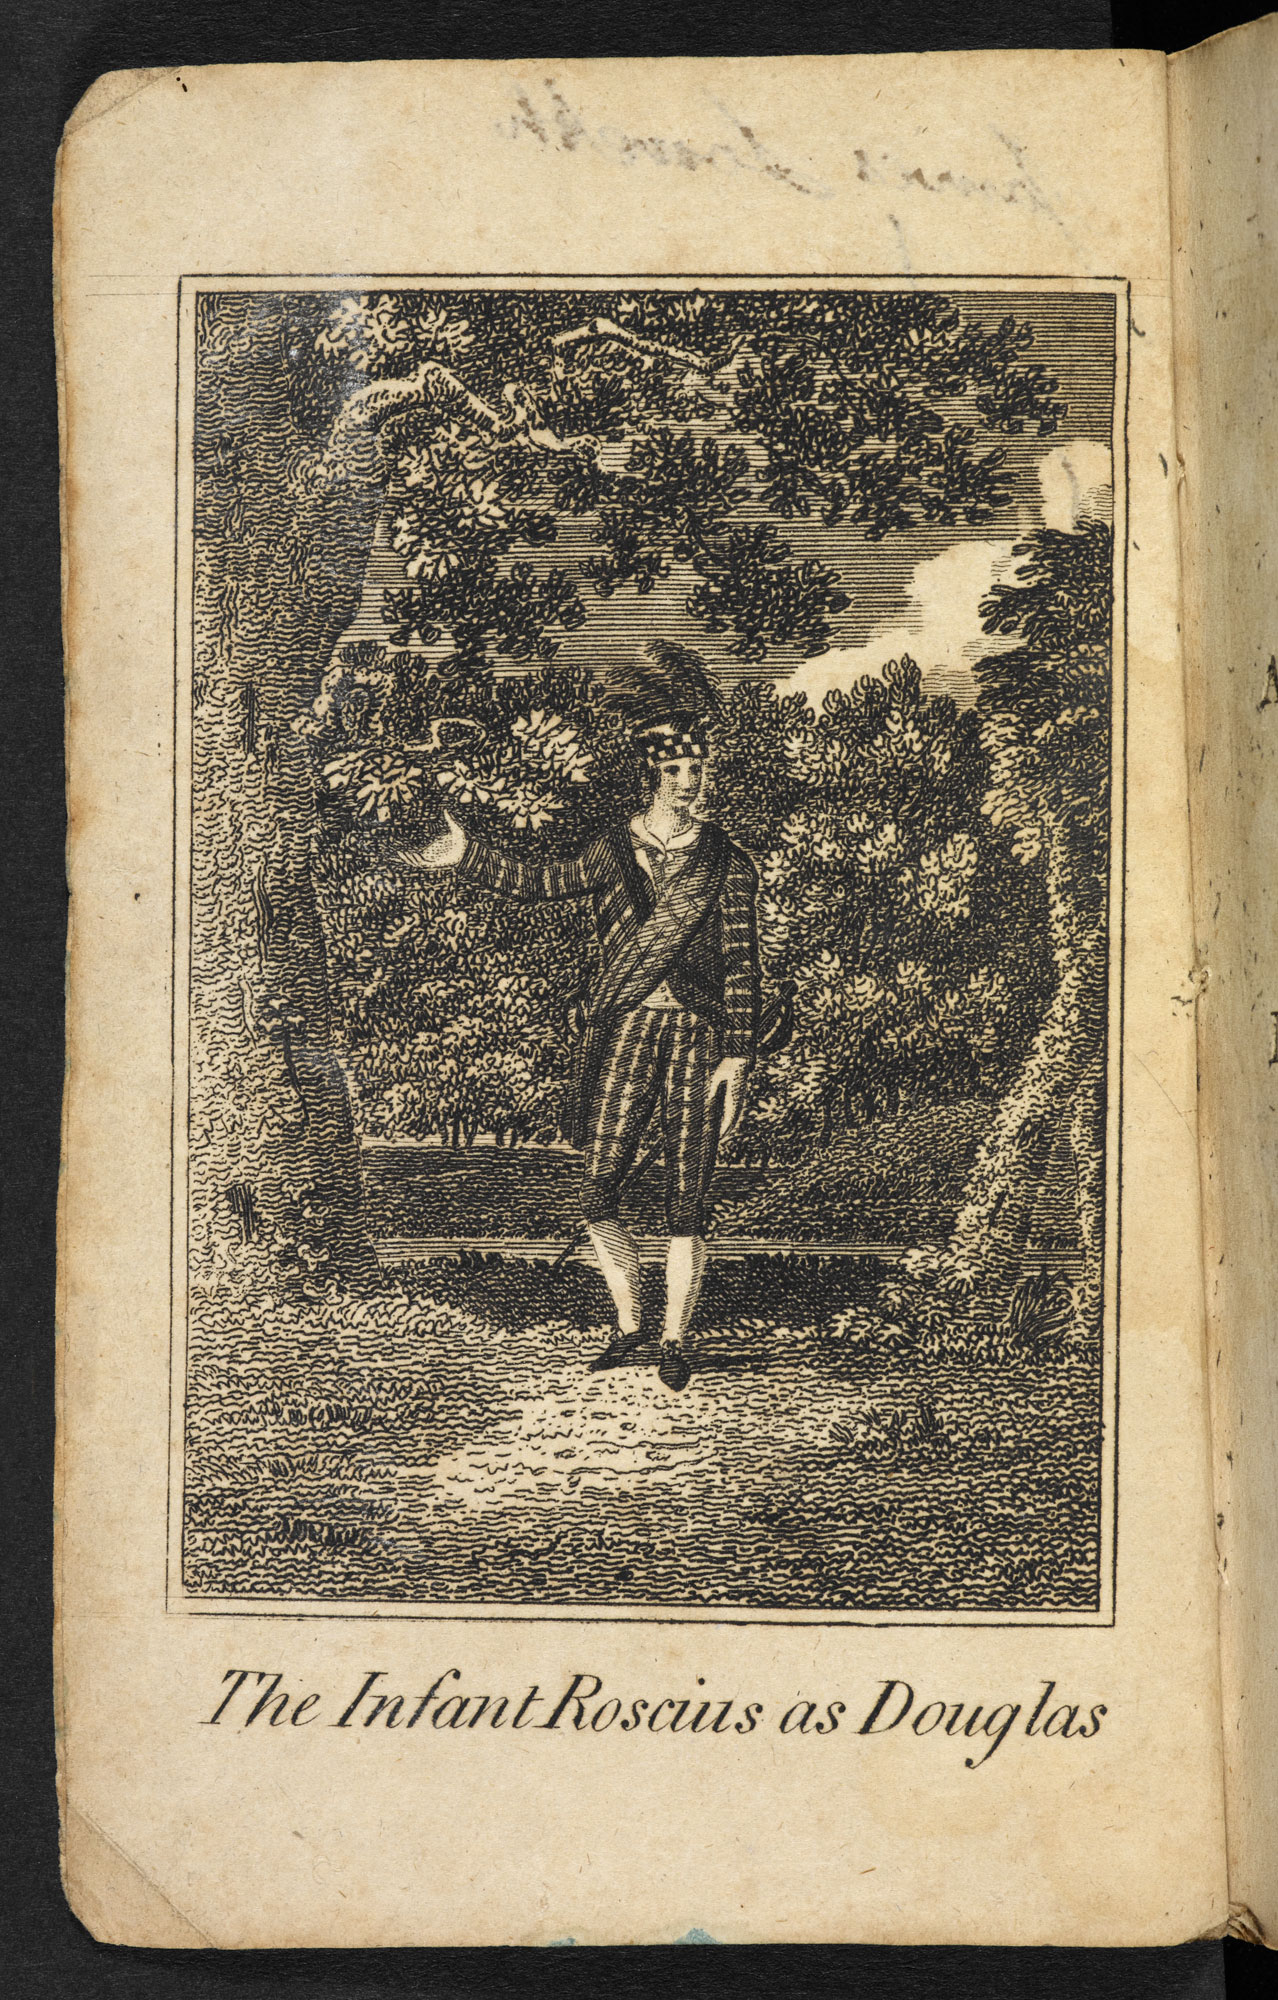 Account of a child actor: Authentic Memoirs of that Wonderful Phenomenon, the Infant Roscius [page: frontispiece]